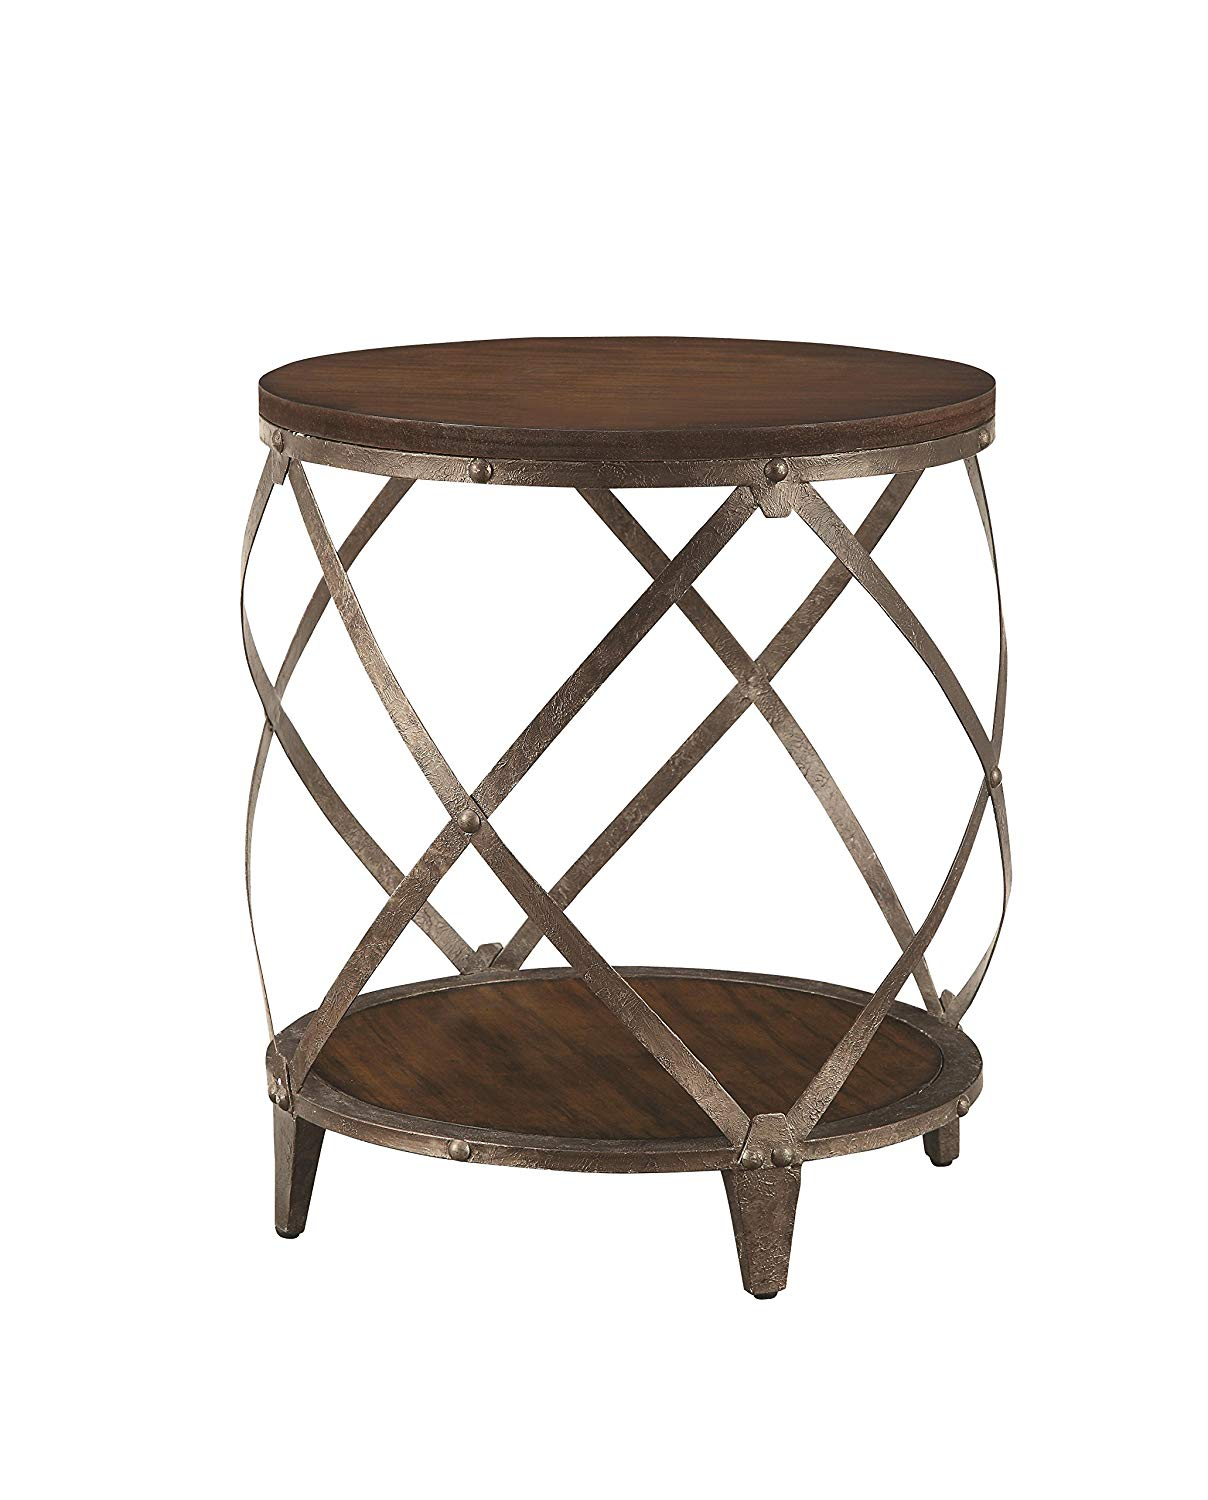 metal accent table with drum shape brown kitchen dining white marble square coffee grey occasional chair adjustable glass unfinished console drawer distressed teal end small space